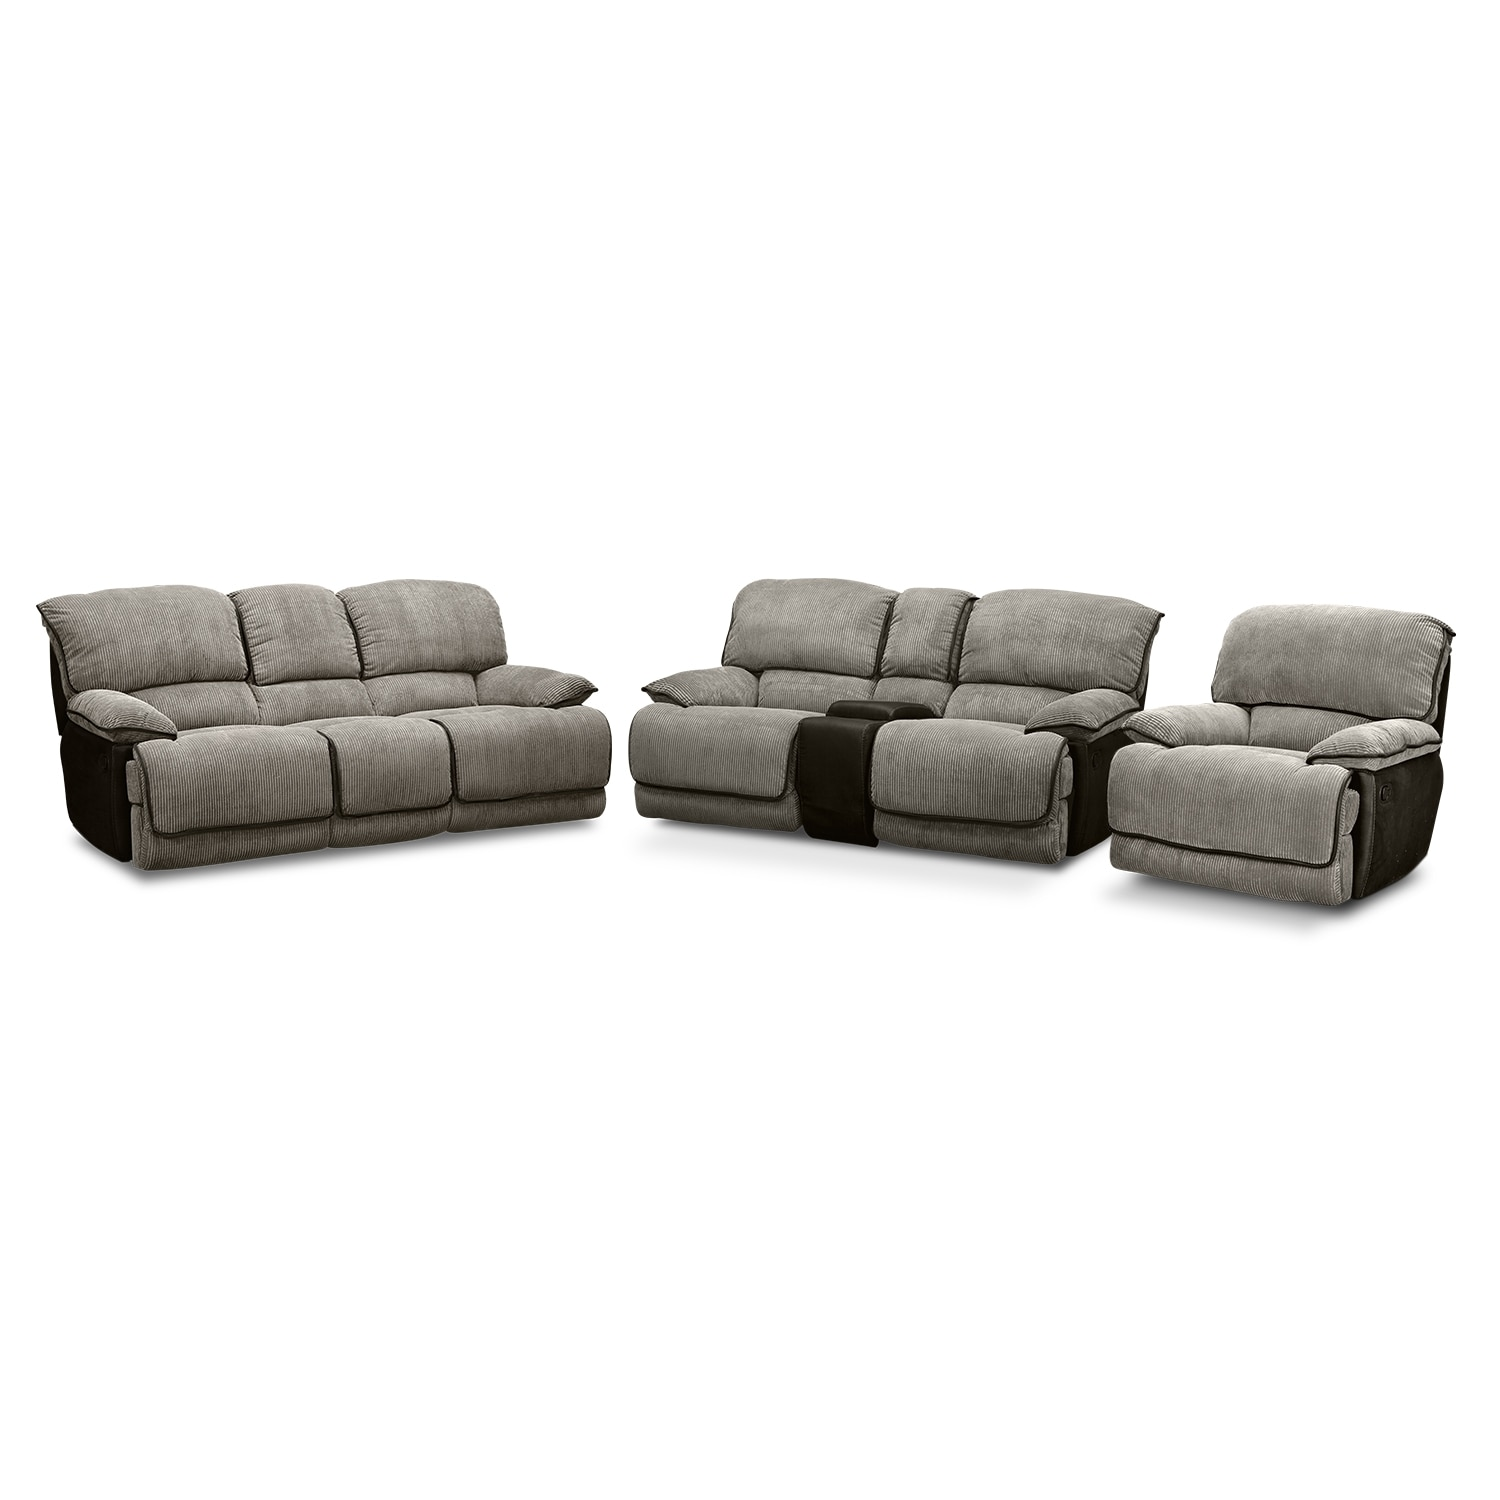 [Laguna II 3 Pc. Reclining Living Room]